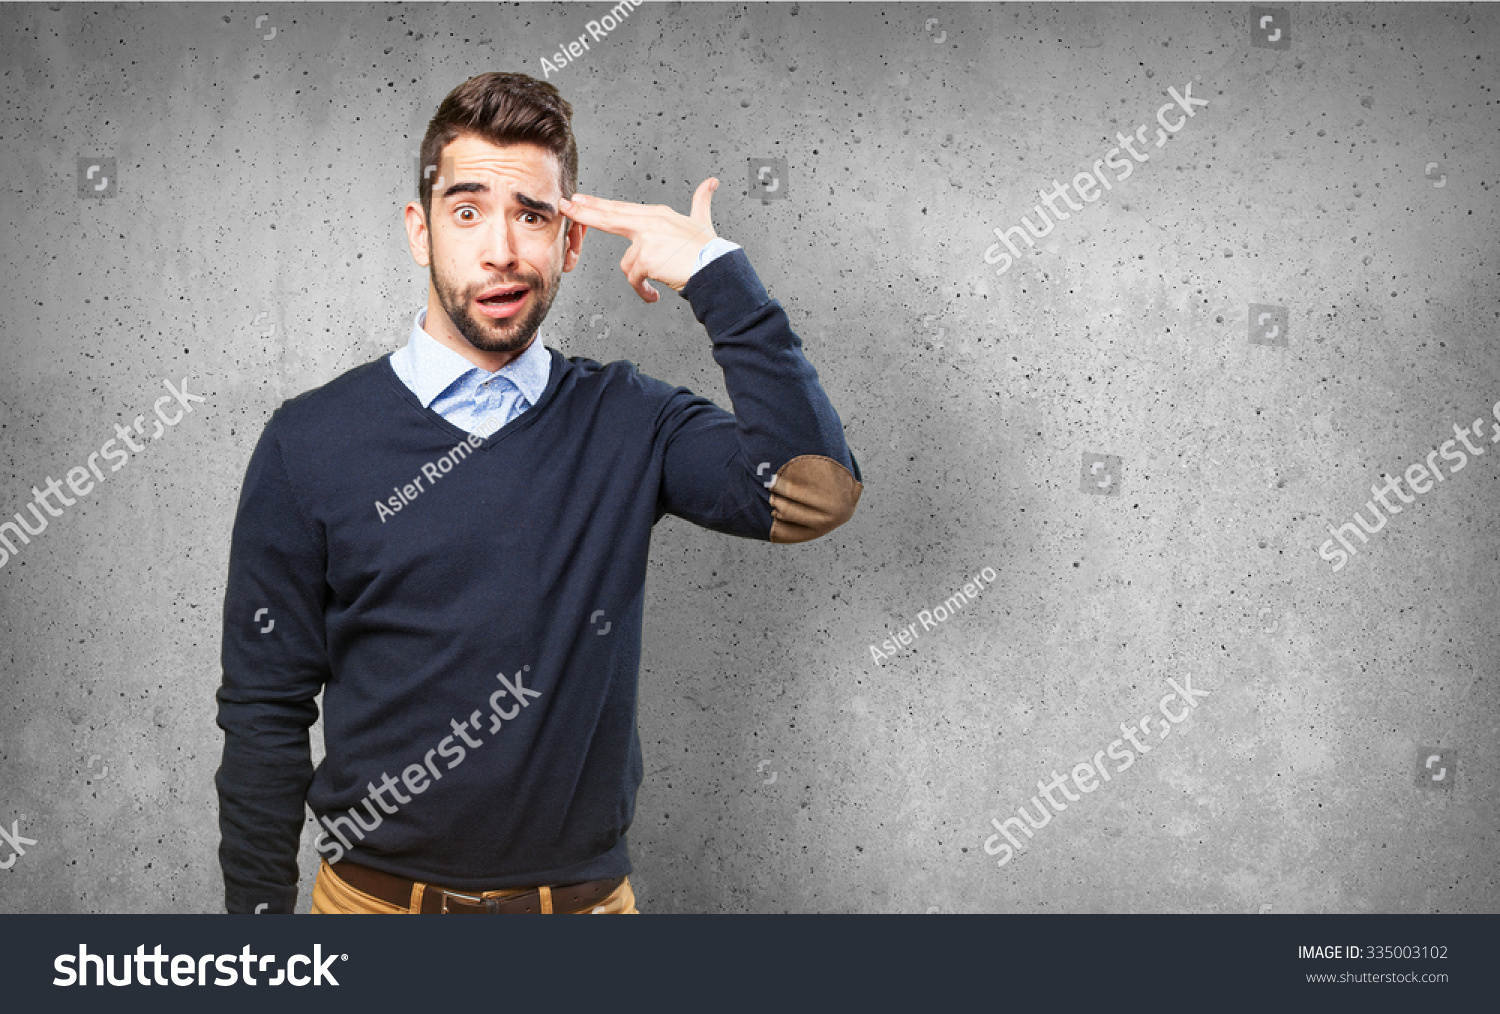 cool man doing a suicide symbol #335003102